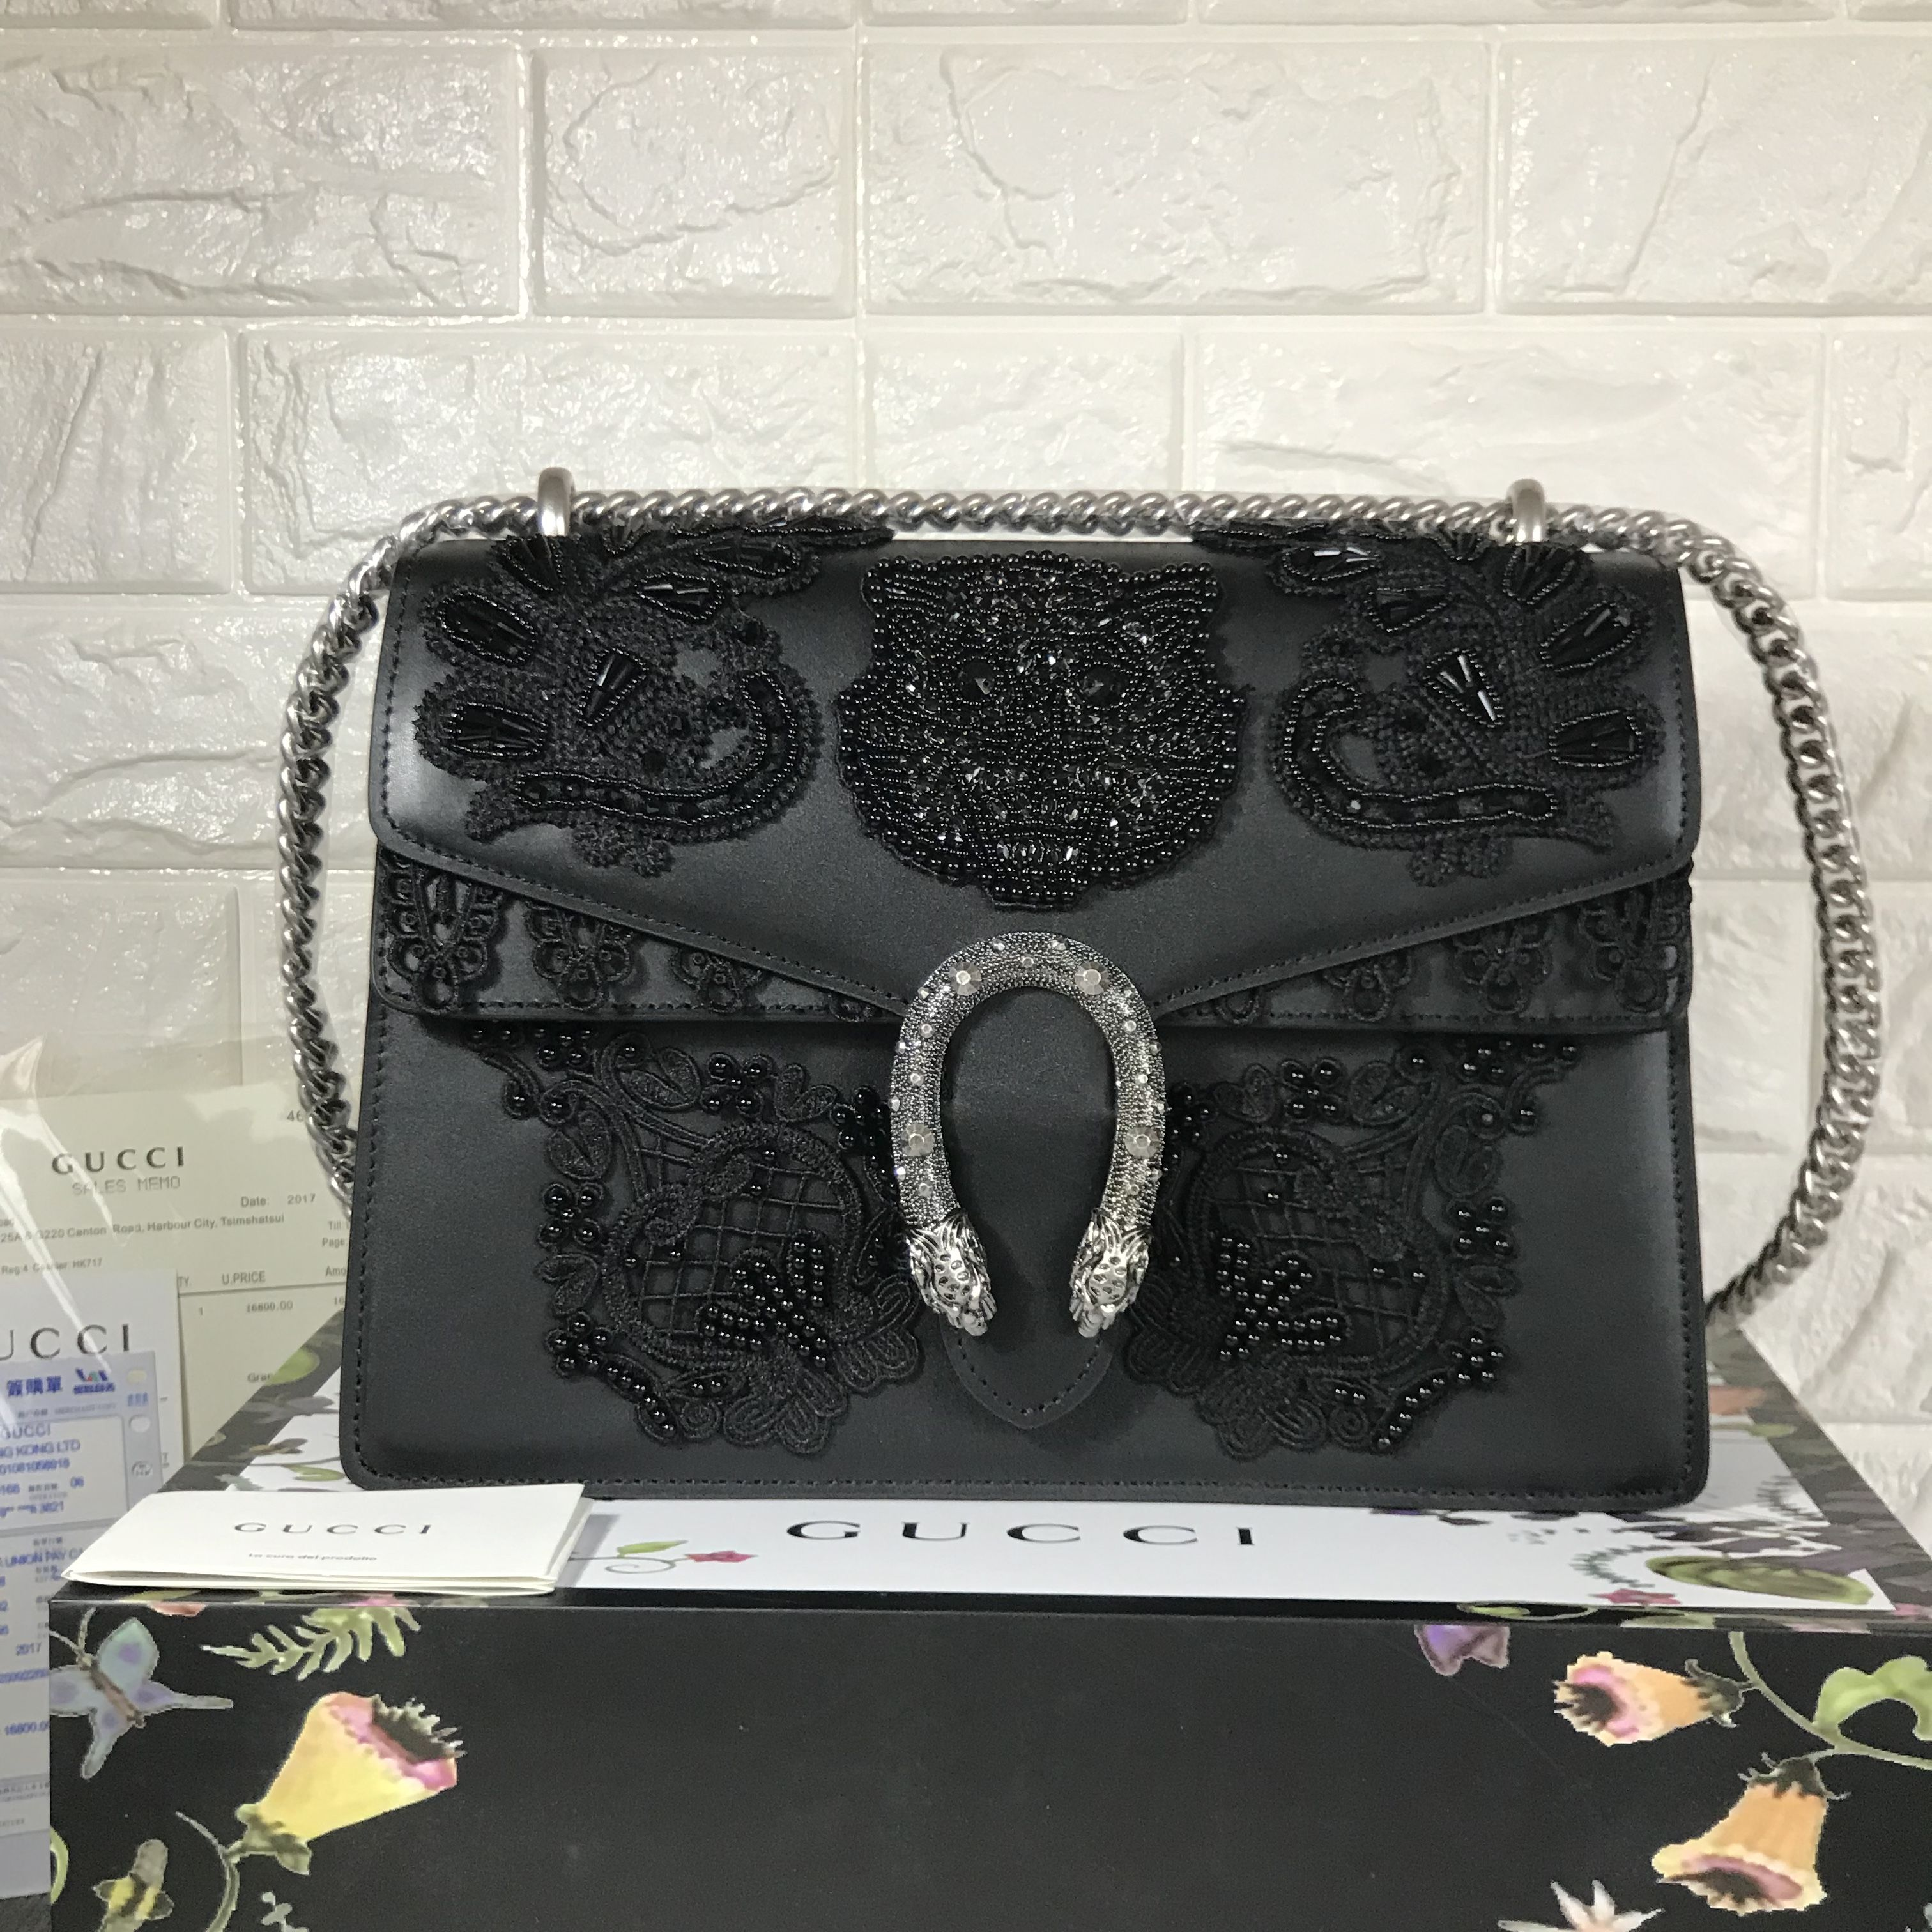 d87b22f3cad7 Gucci Dionysus bag medium 30cm with embroidered lace beads original leather  version